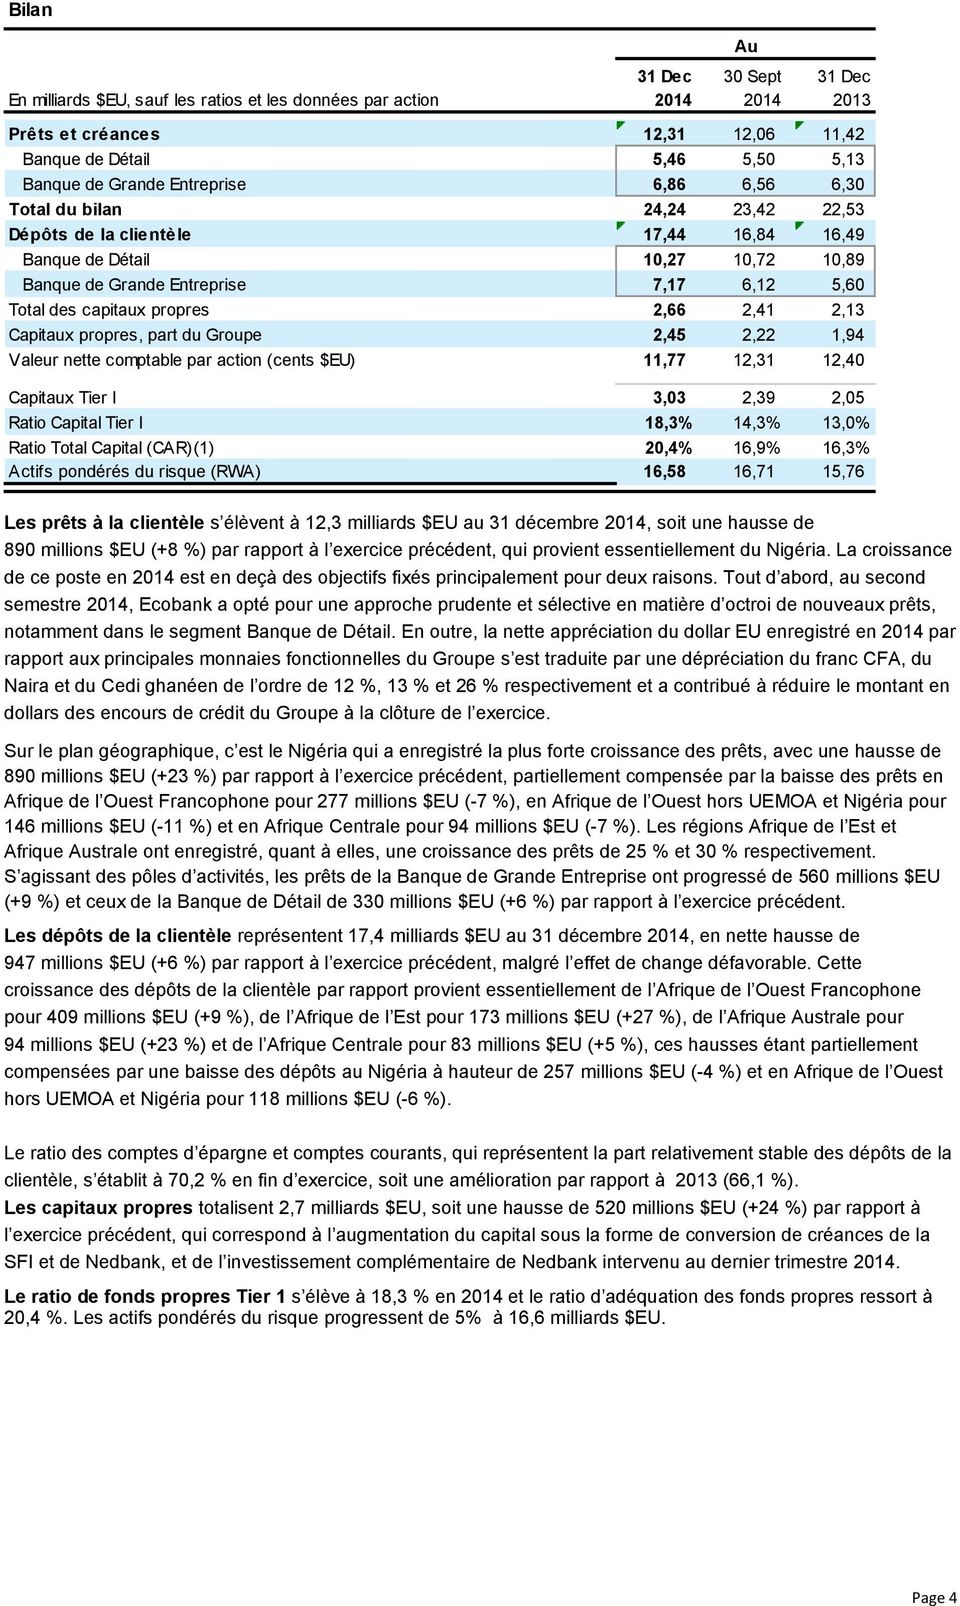 2,41 2,13 Capitaux propres, part du Groupe 2,45 2,22 1,94 Valeur nette comptable par action (cents $EU) 11,77 12,31 12,40 Capitaux Tier I 3,03 2,39 2,05 Ratio Capital Tier I 18,3% 14,3% 13,0% Ratio